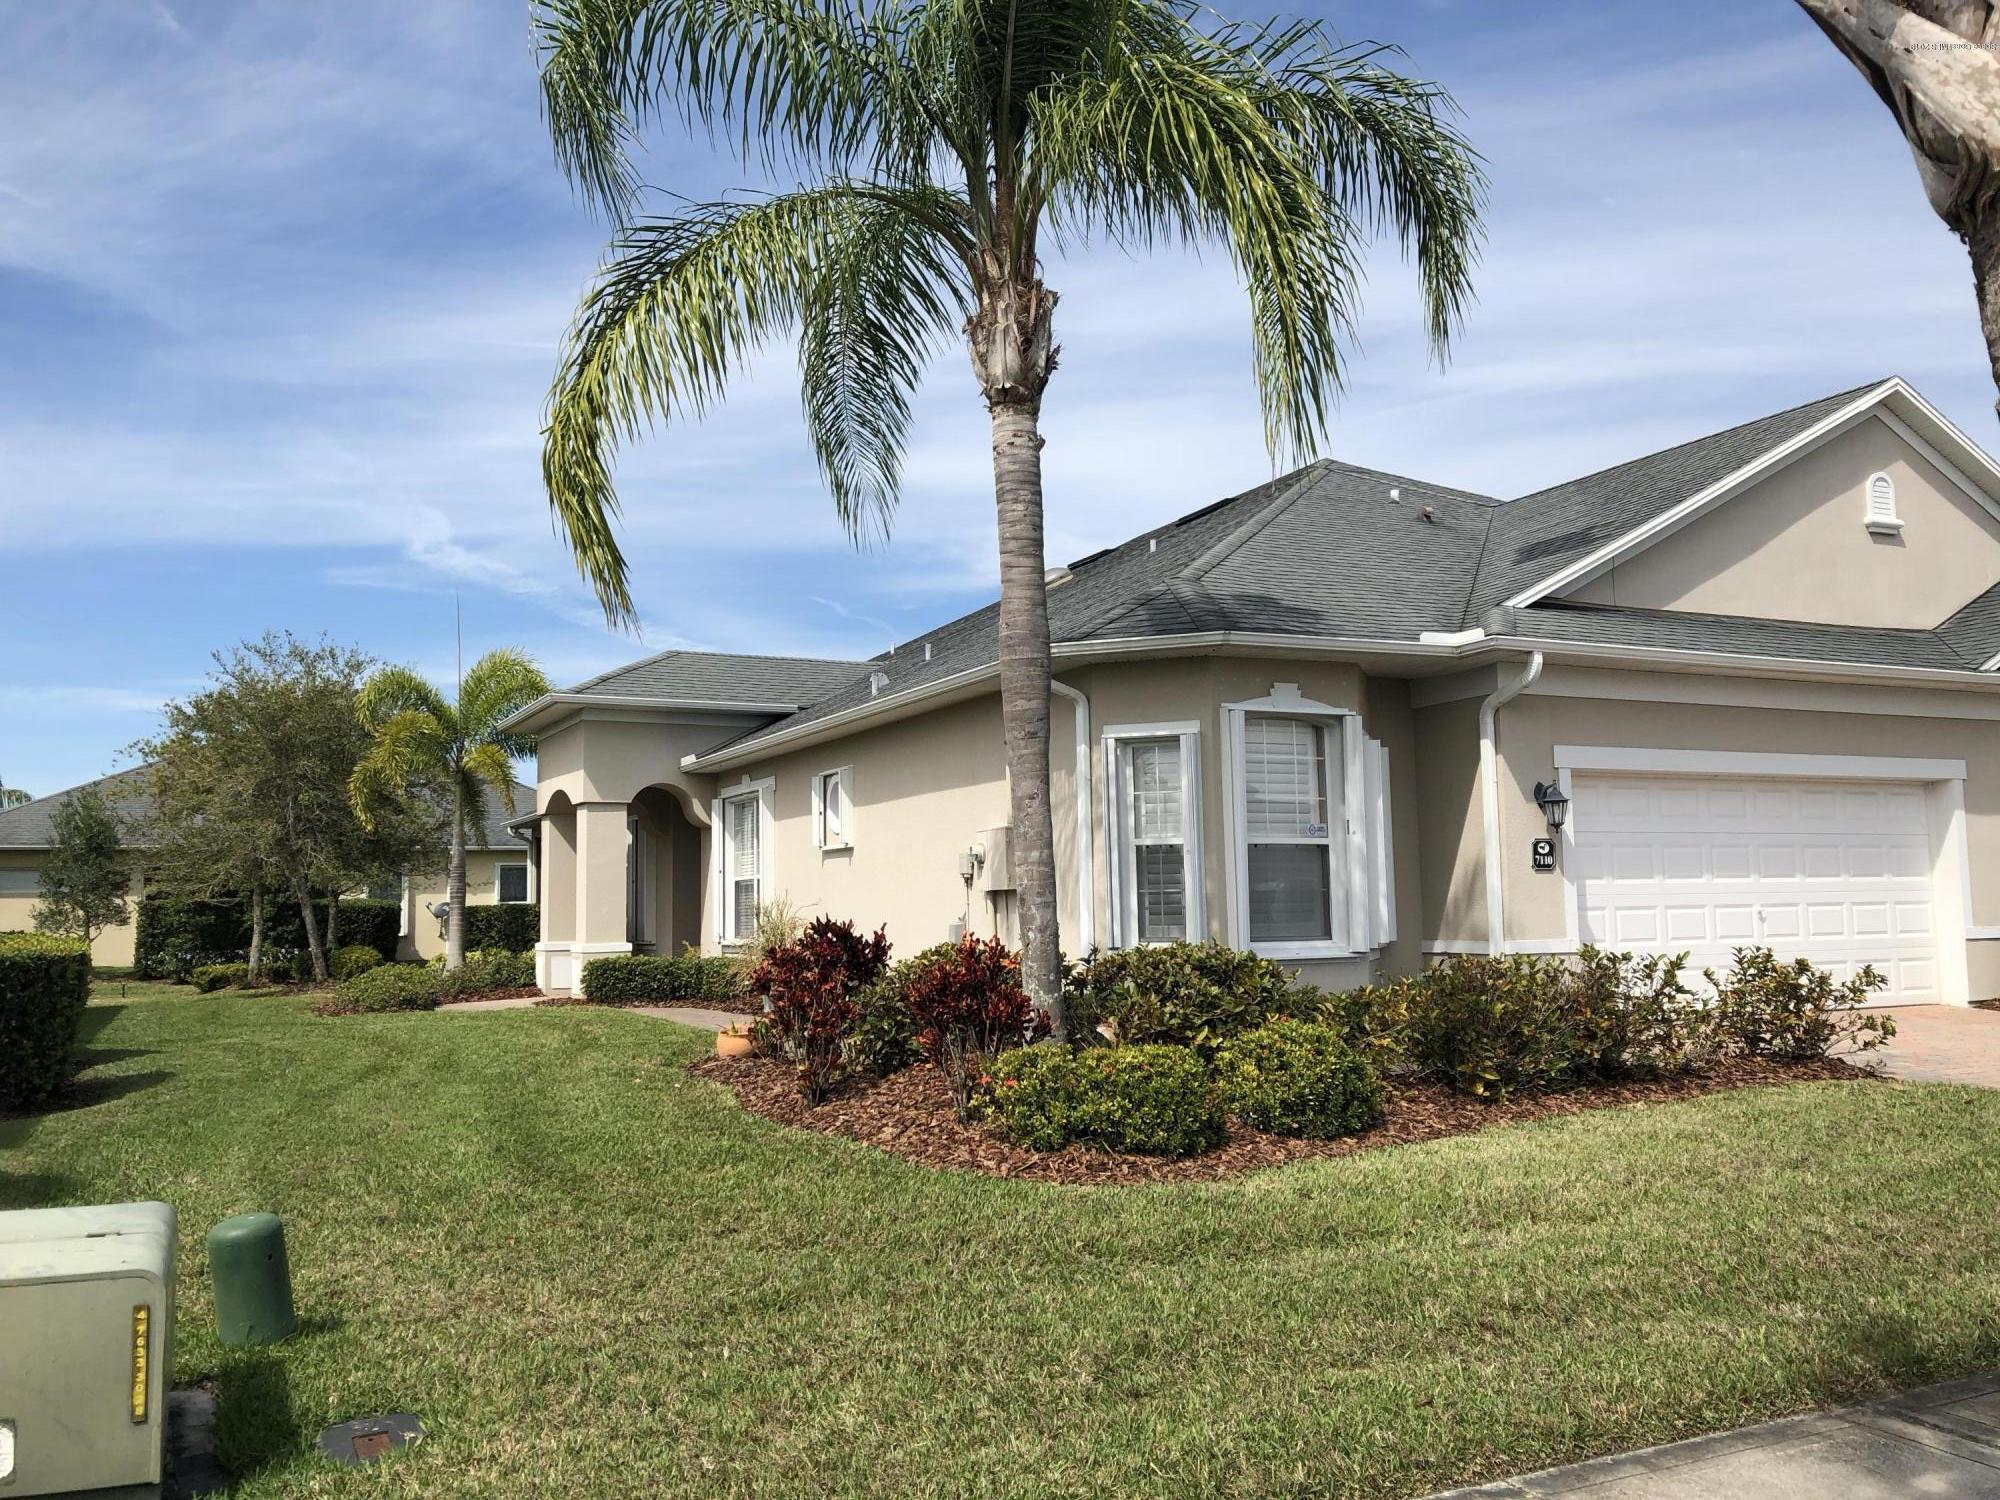 Single Family Home for Rent at 7110 S Ralston 7110 S Ralston Melbourne, Florida 32940 United States